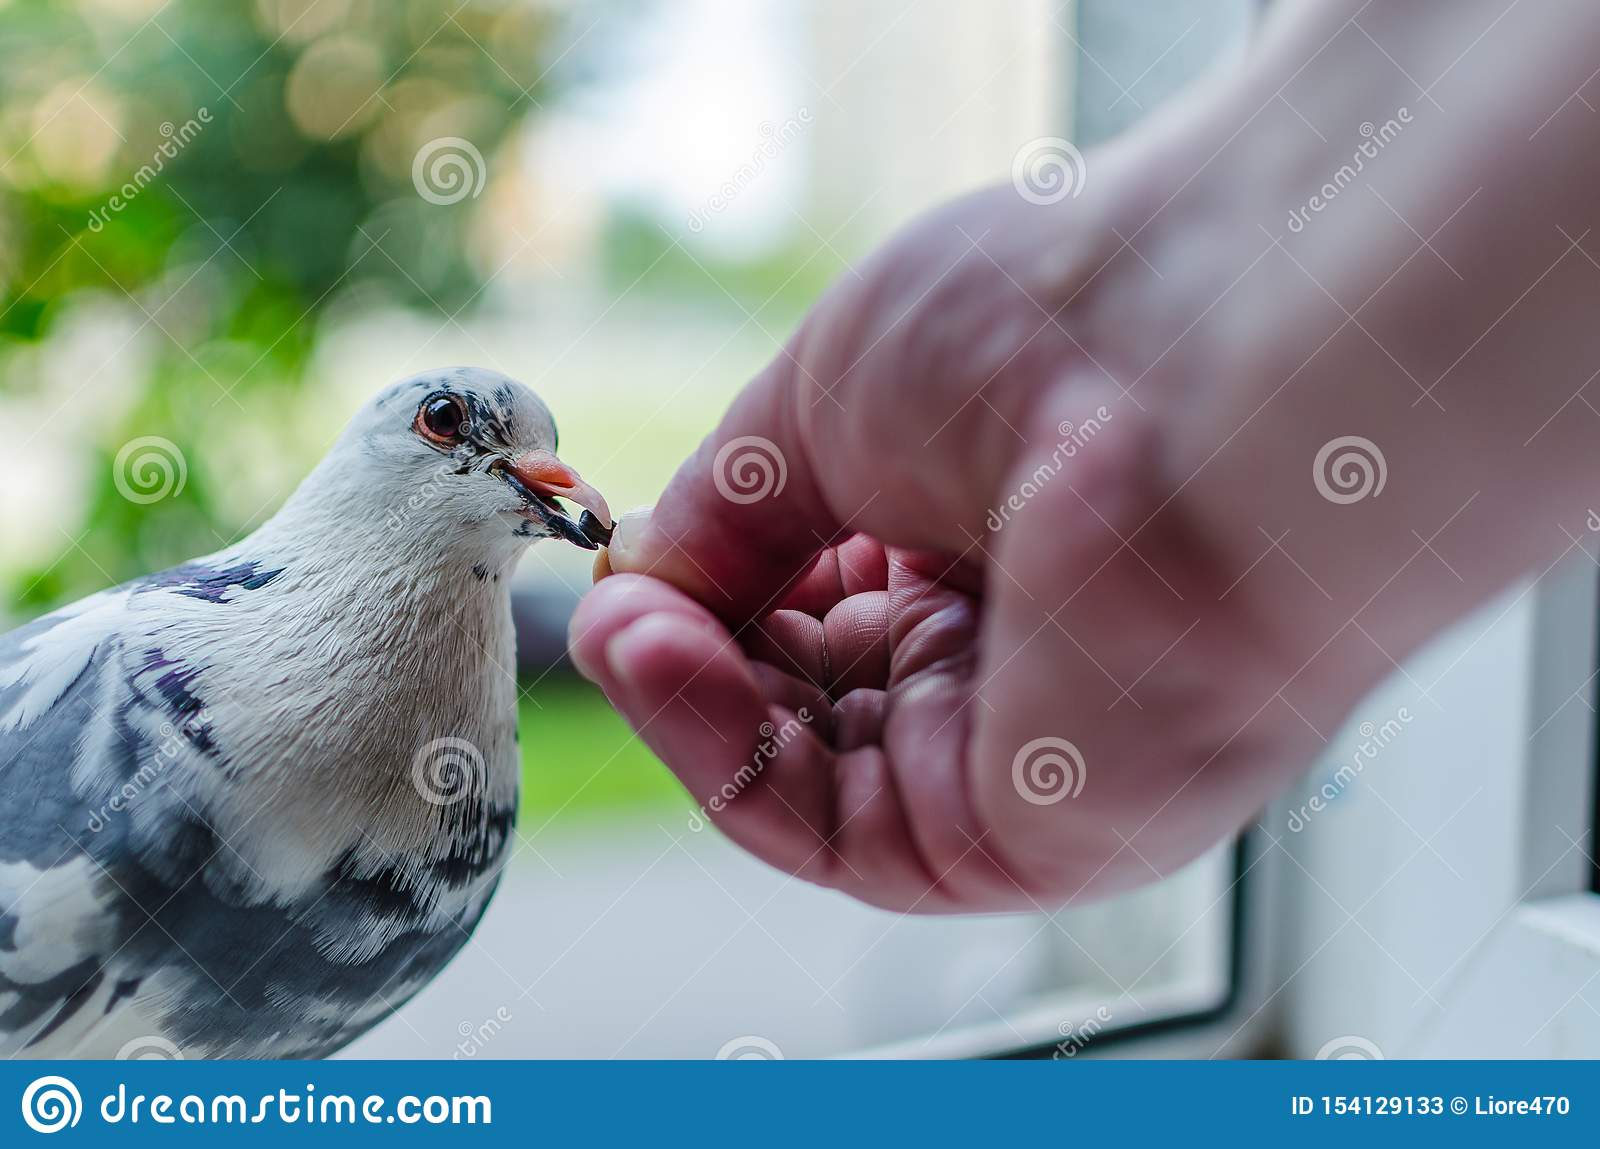 A wild white dove sits on the window and eats from the hands of man. Photo close up. The concept of trust, friendship and help